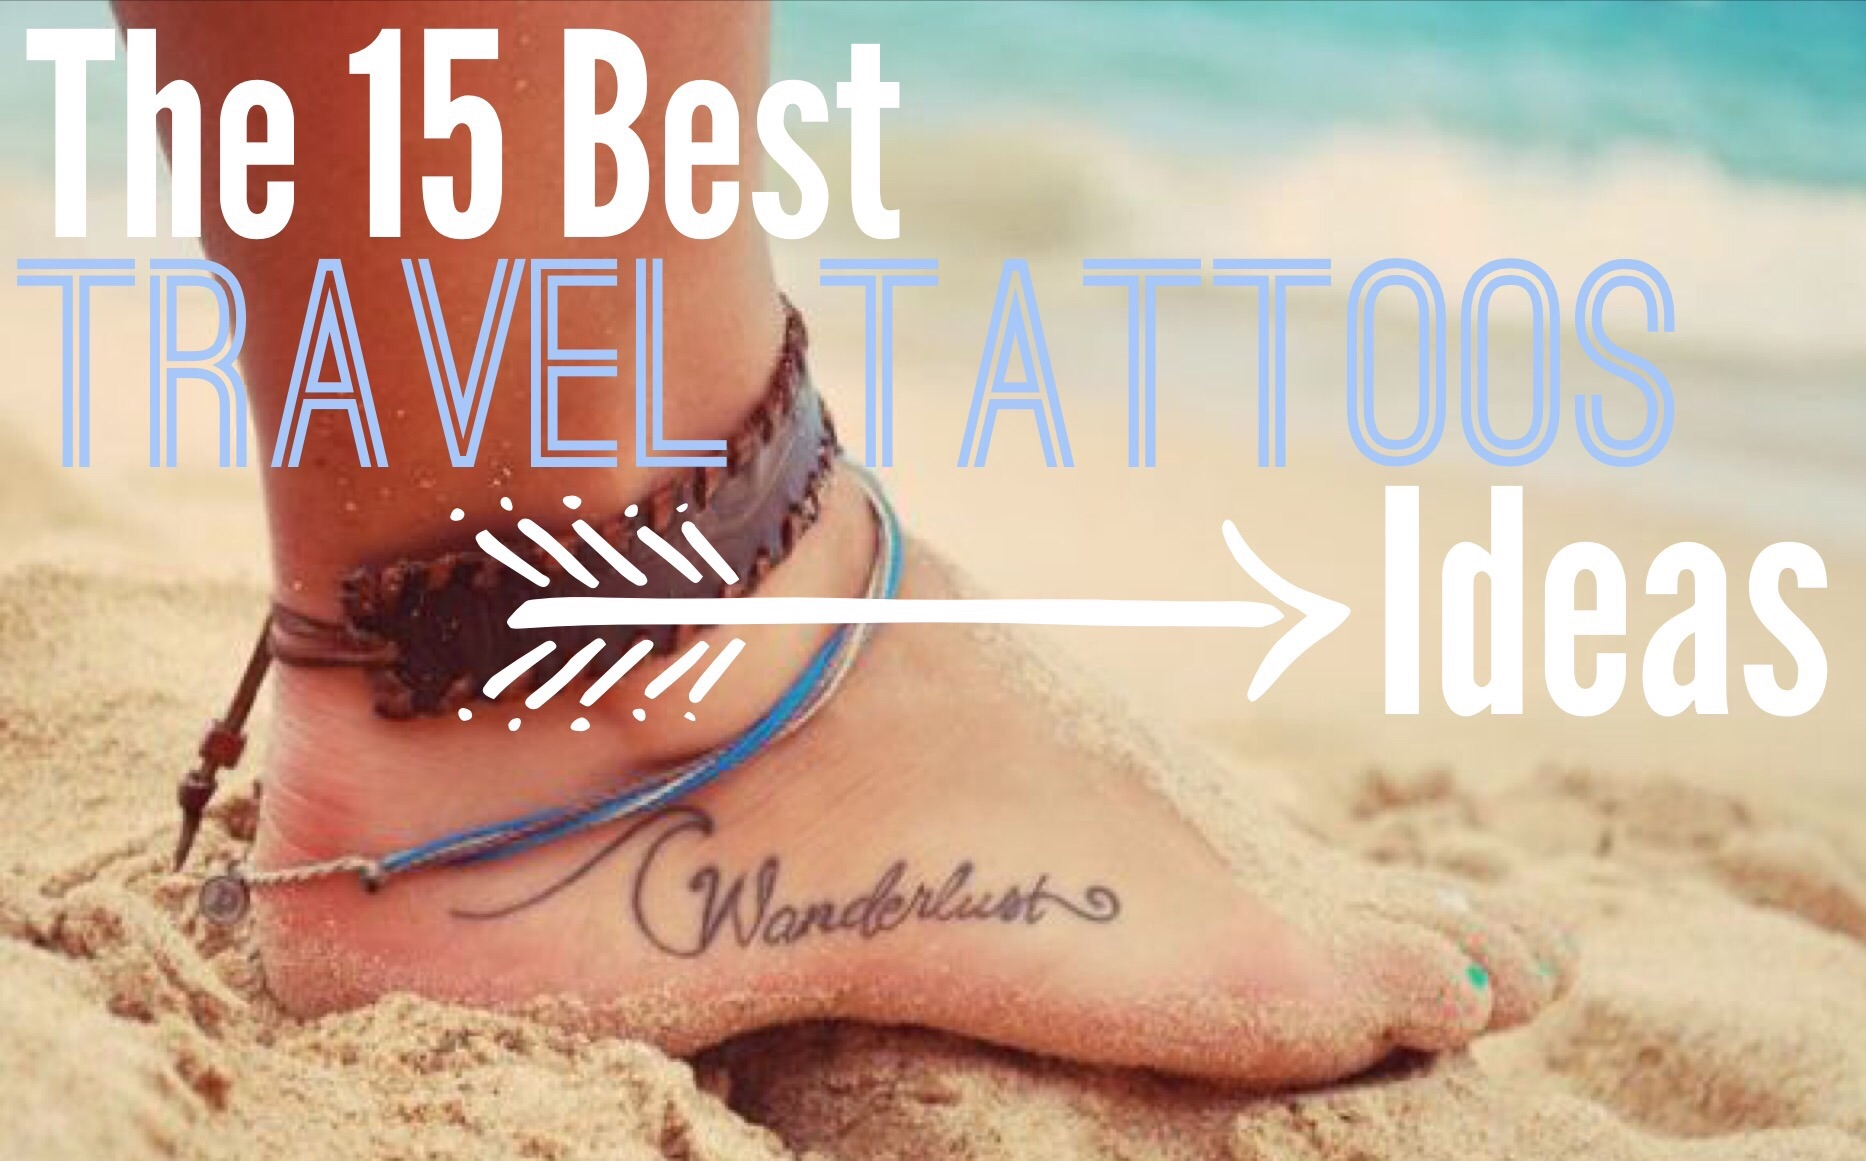 The 15 Best Travel Tattoos Ideas: vanillaskydreaming.com/the-15-best-travel-tattoos-ideas